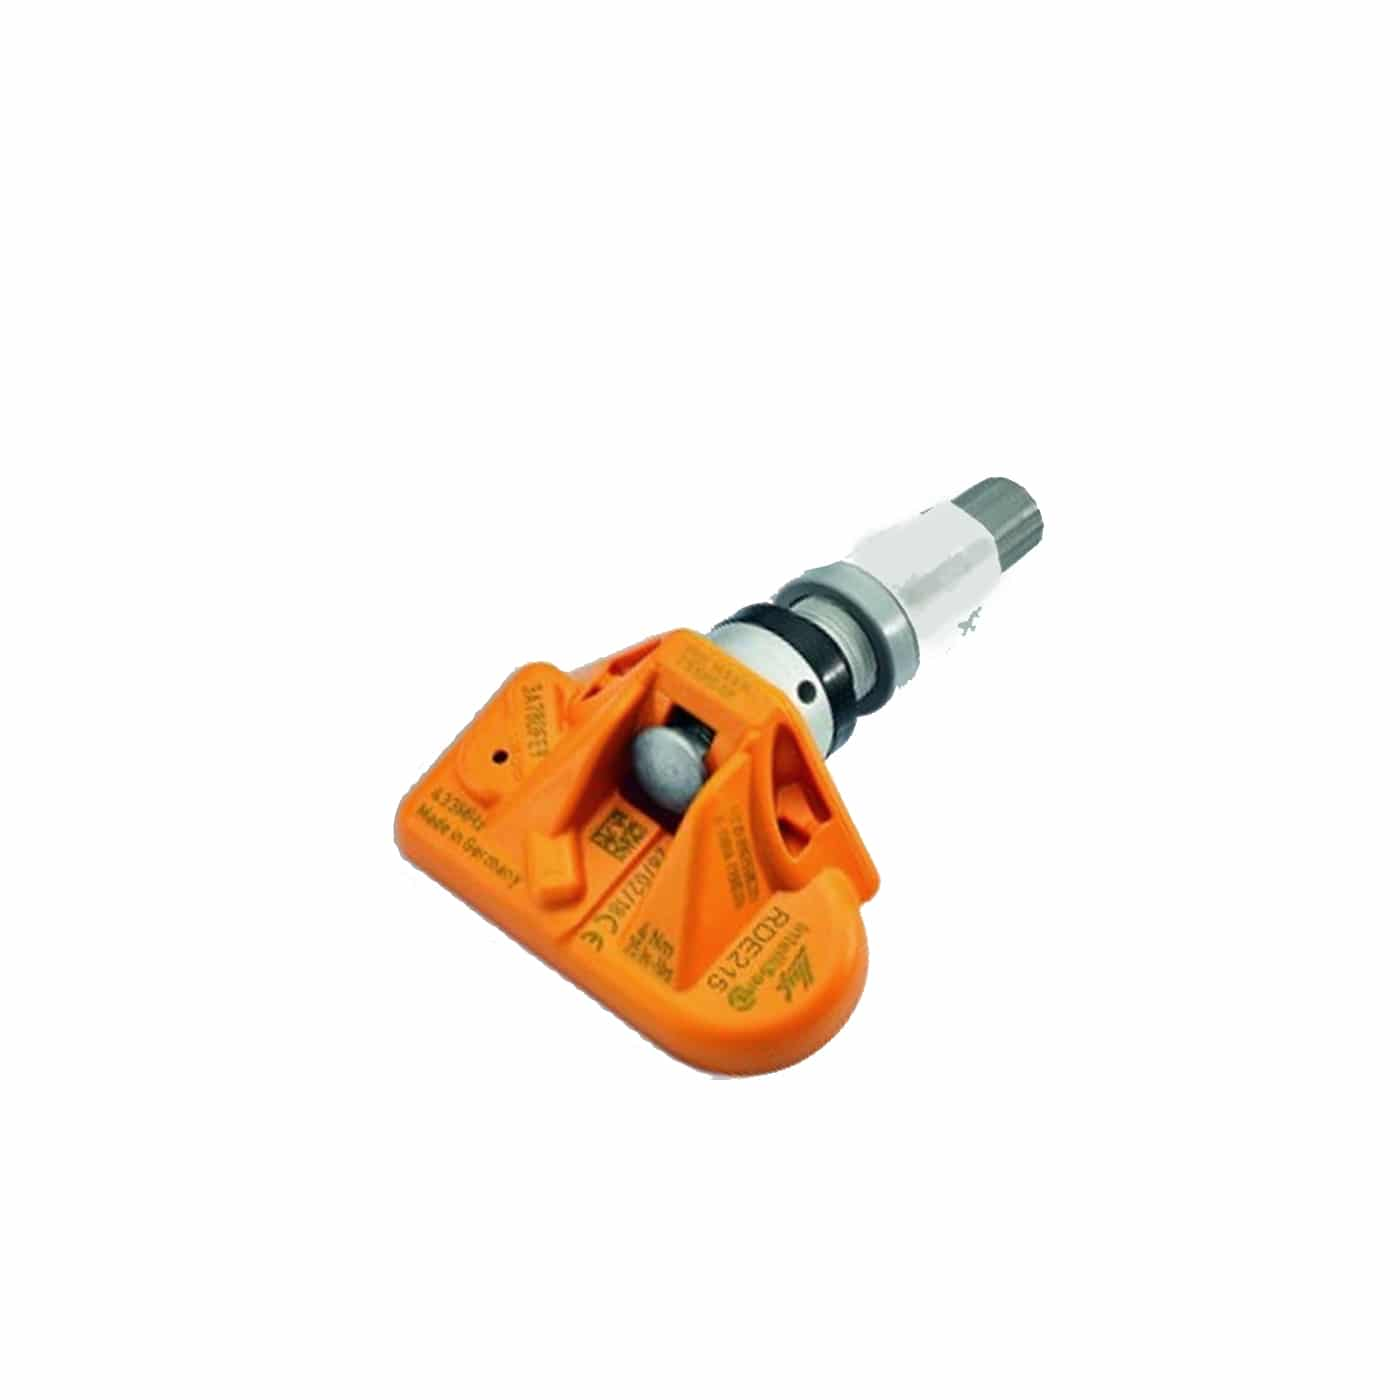 HUF Clamp-in RDE215